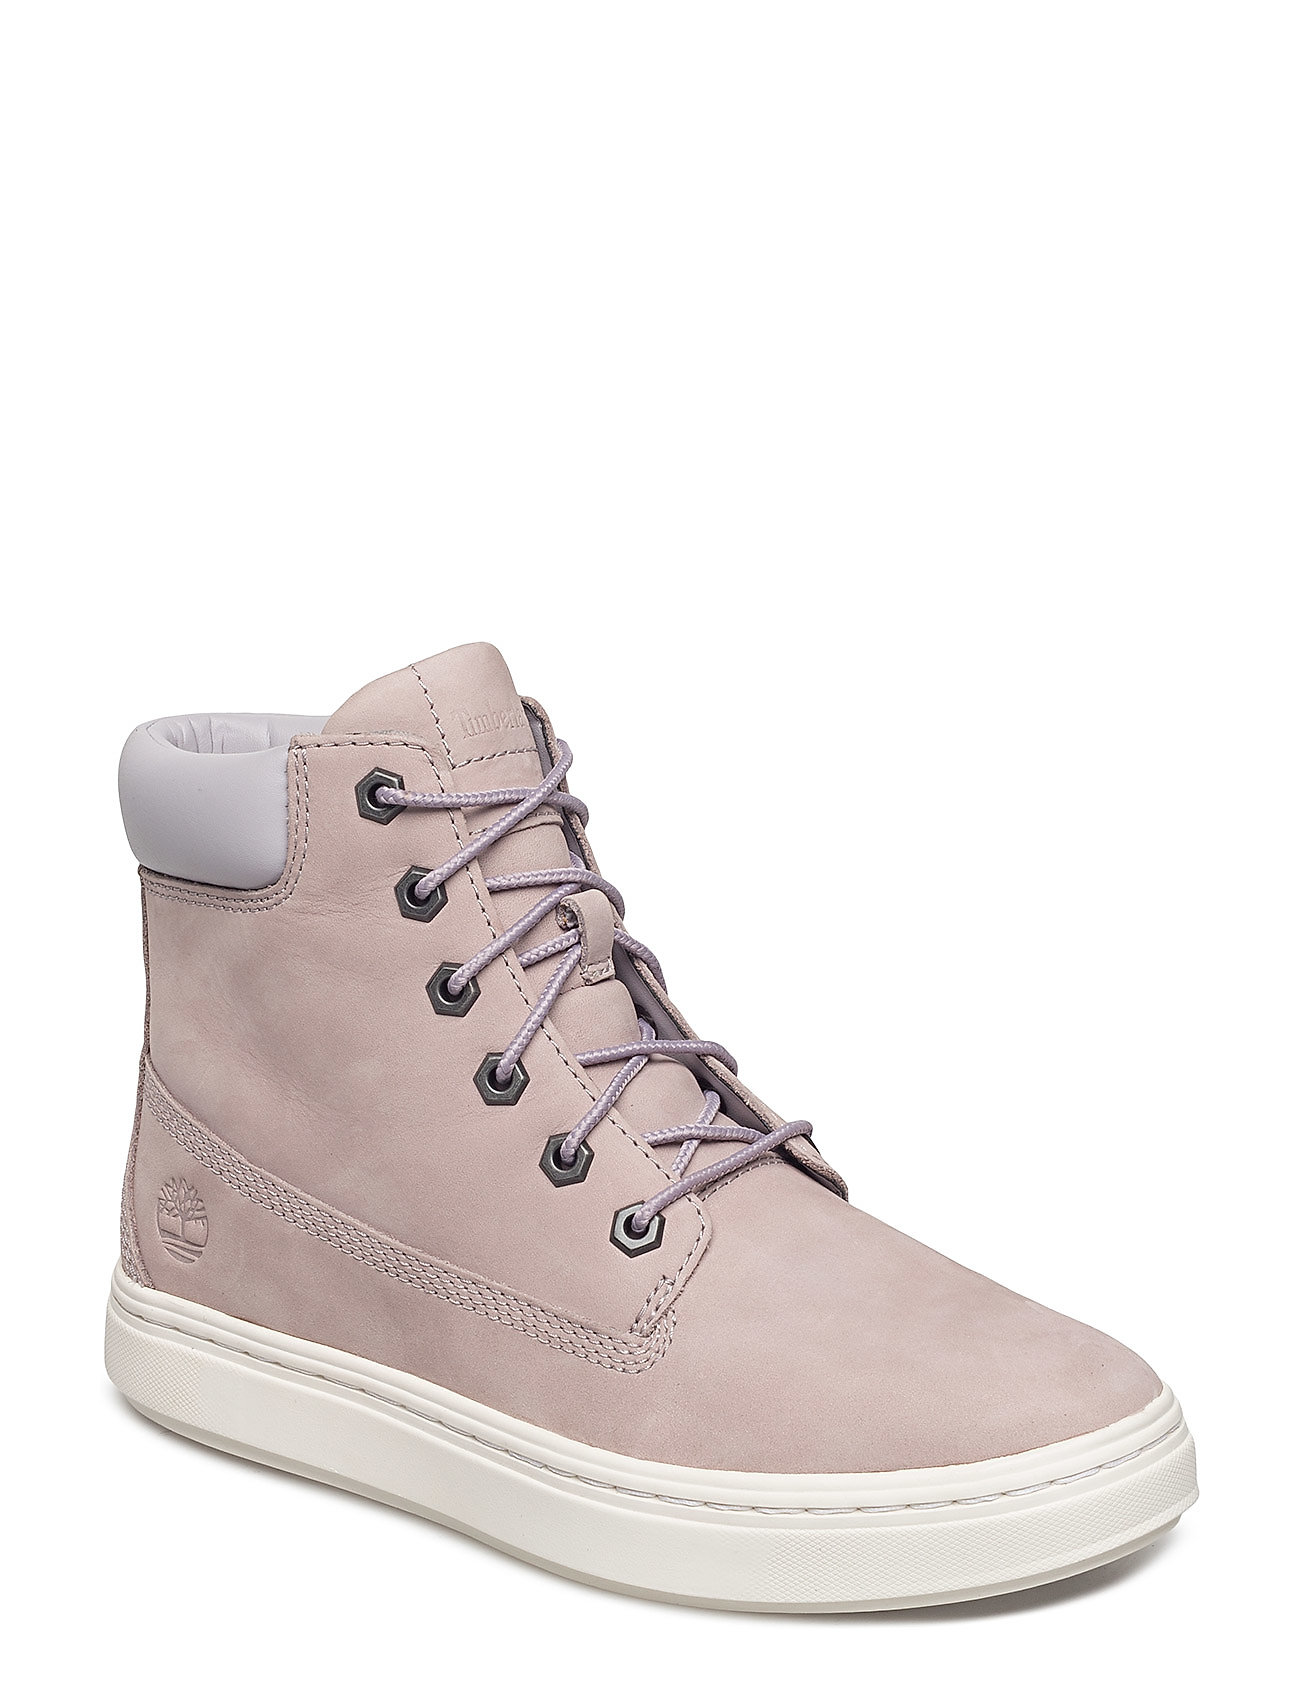 TIMBERLAND Londyn 6in Lt Shoes Boots Ankle Boots Ankle Boots Flat Heel Pink TIMBERLAND